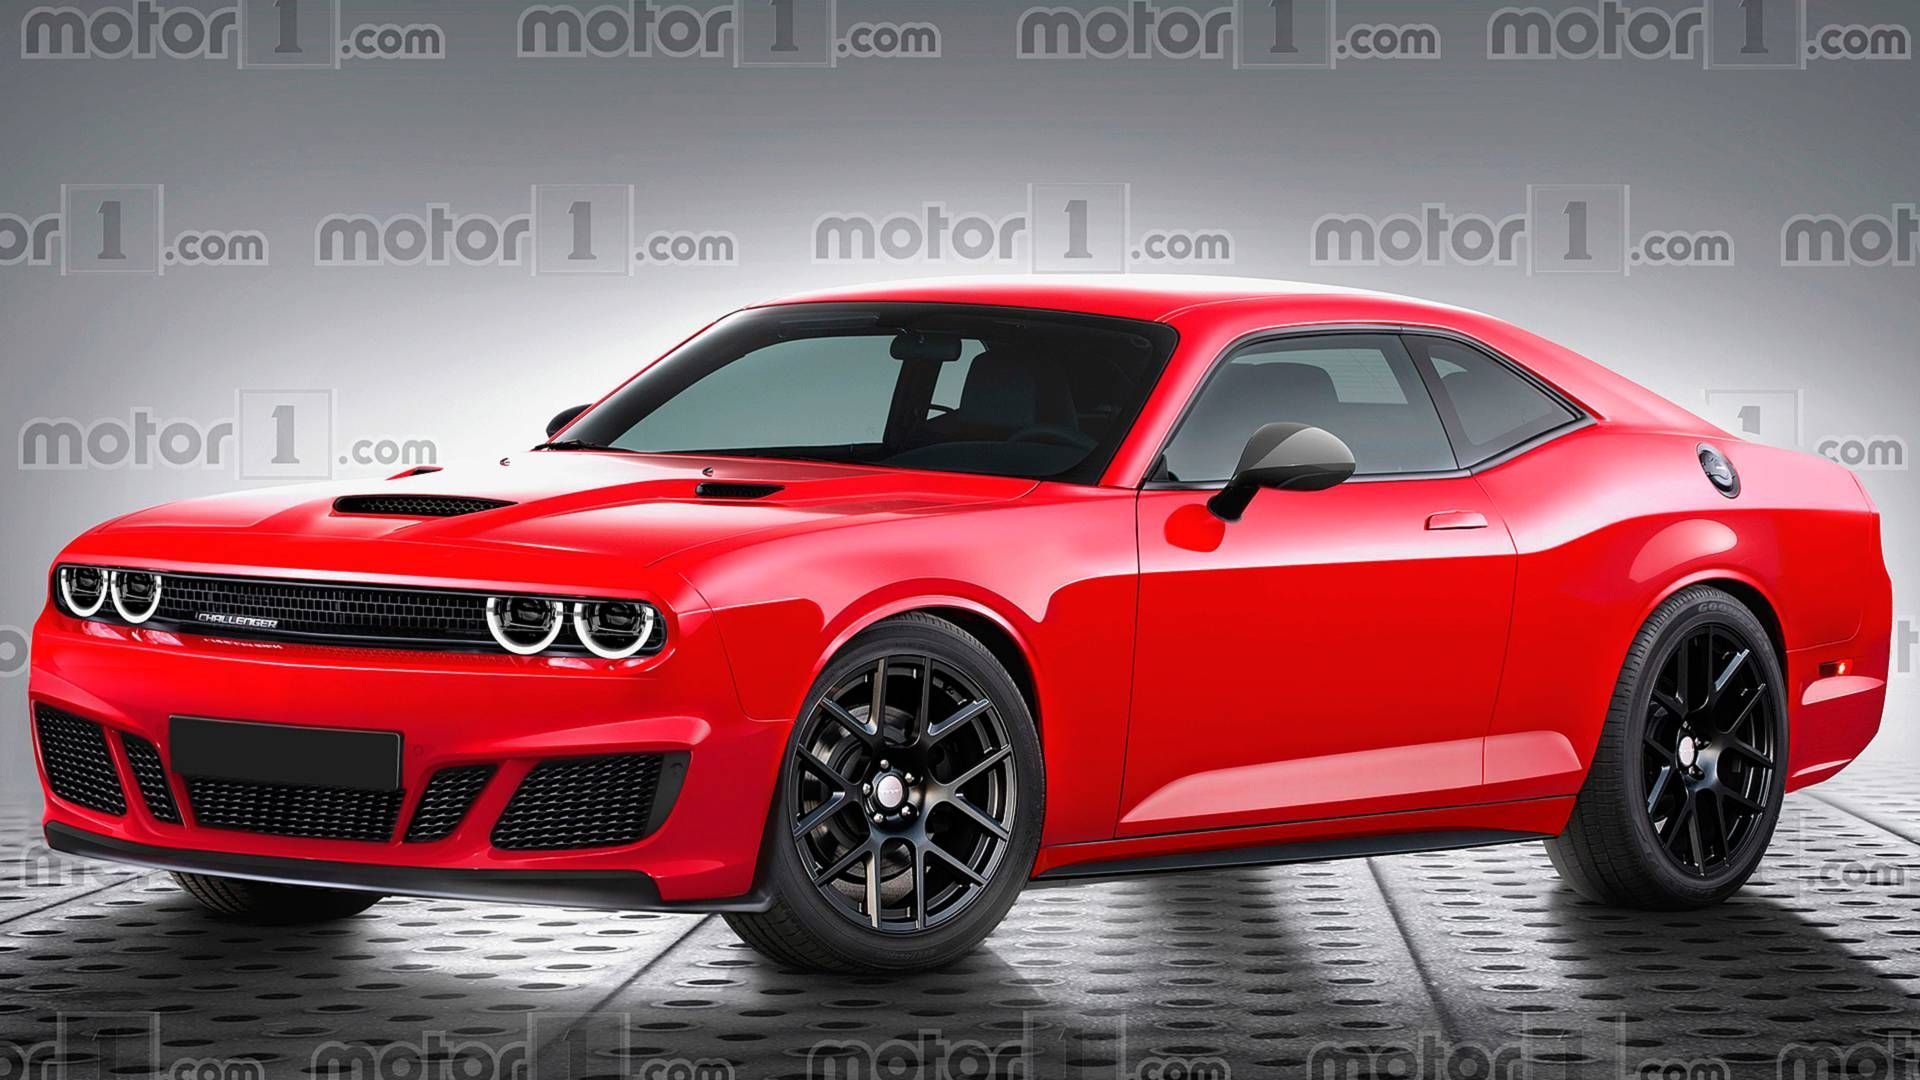 New Dodge Automobiles For 2021 Efficiency And New Engine In 2020 Dodge Challenger Dodge Challenger Hellcat Dodge Charger